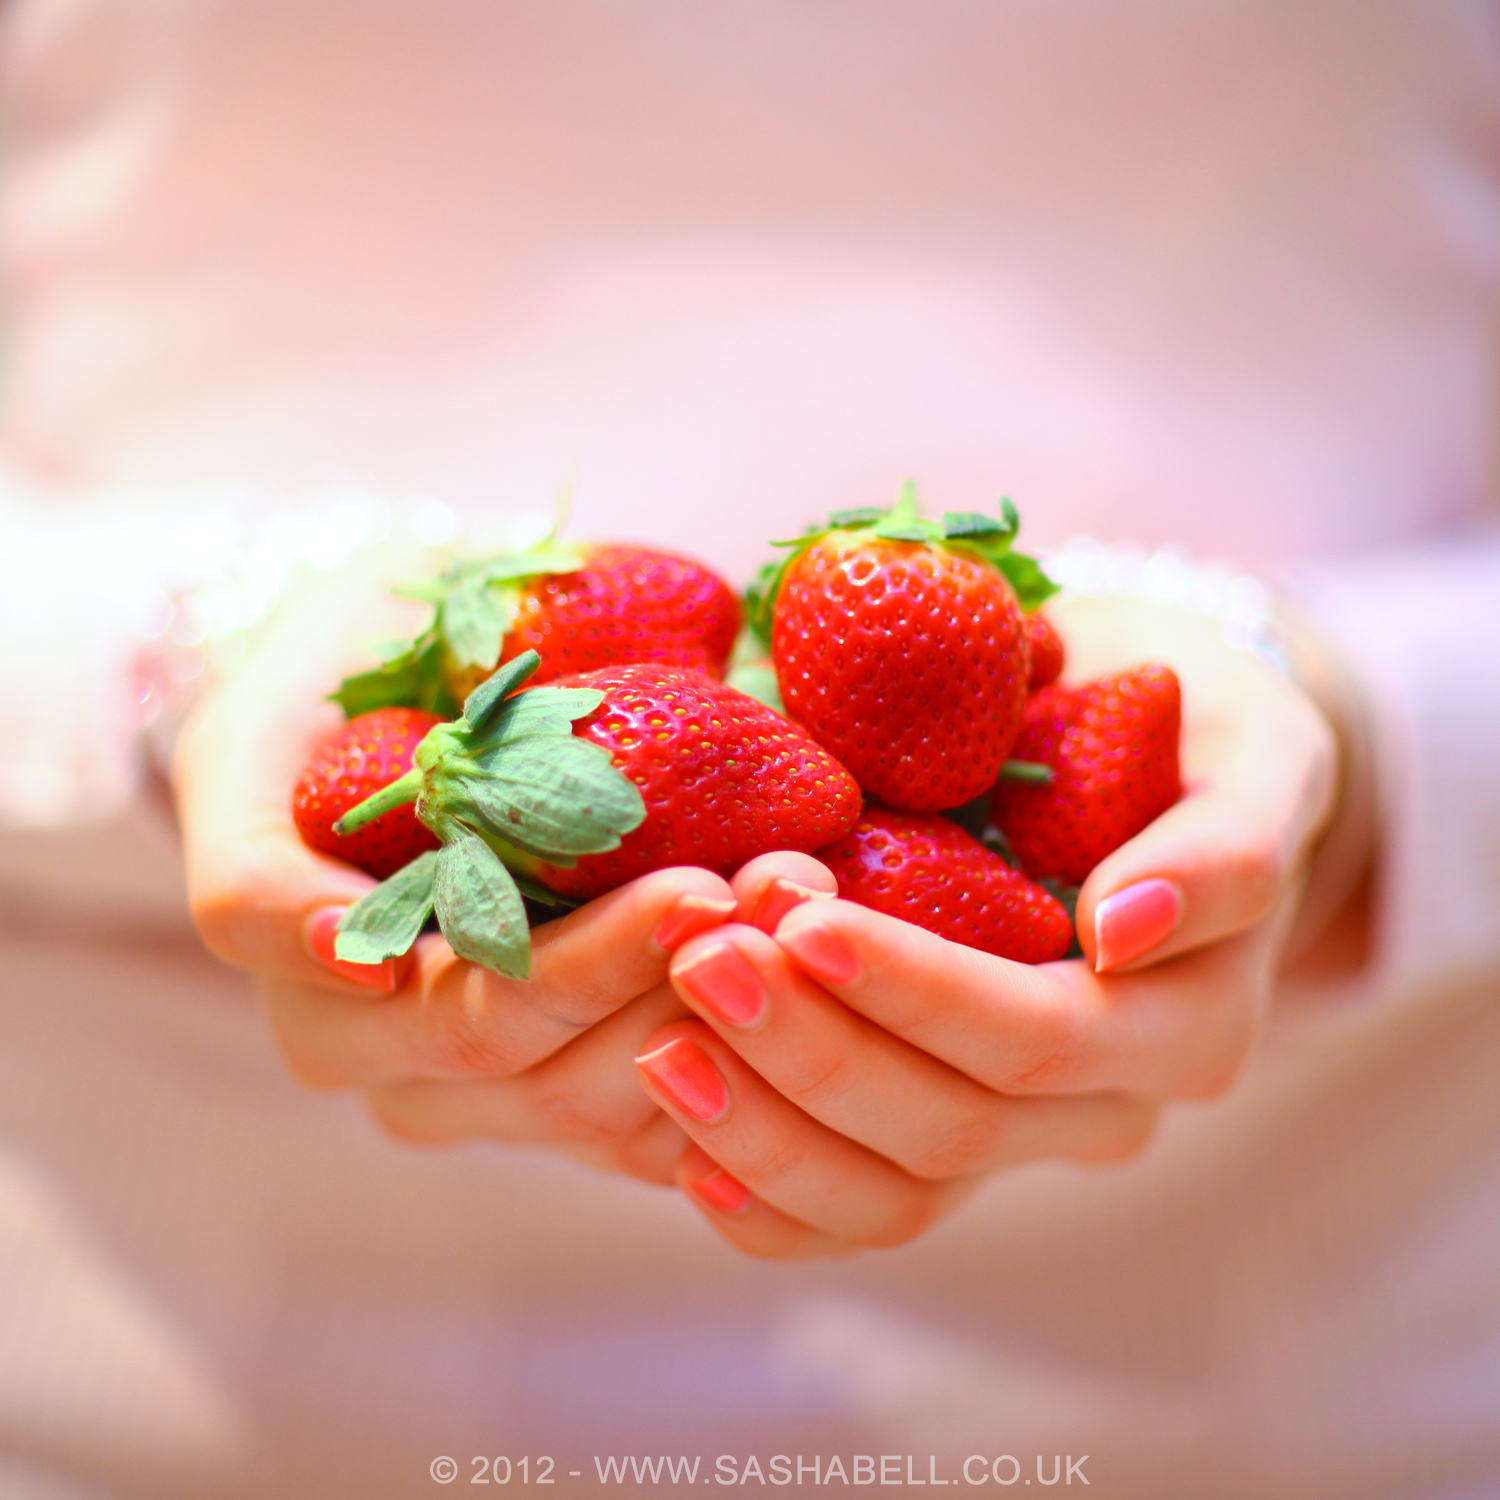 Yummy Strawberries – Day 98/365